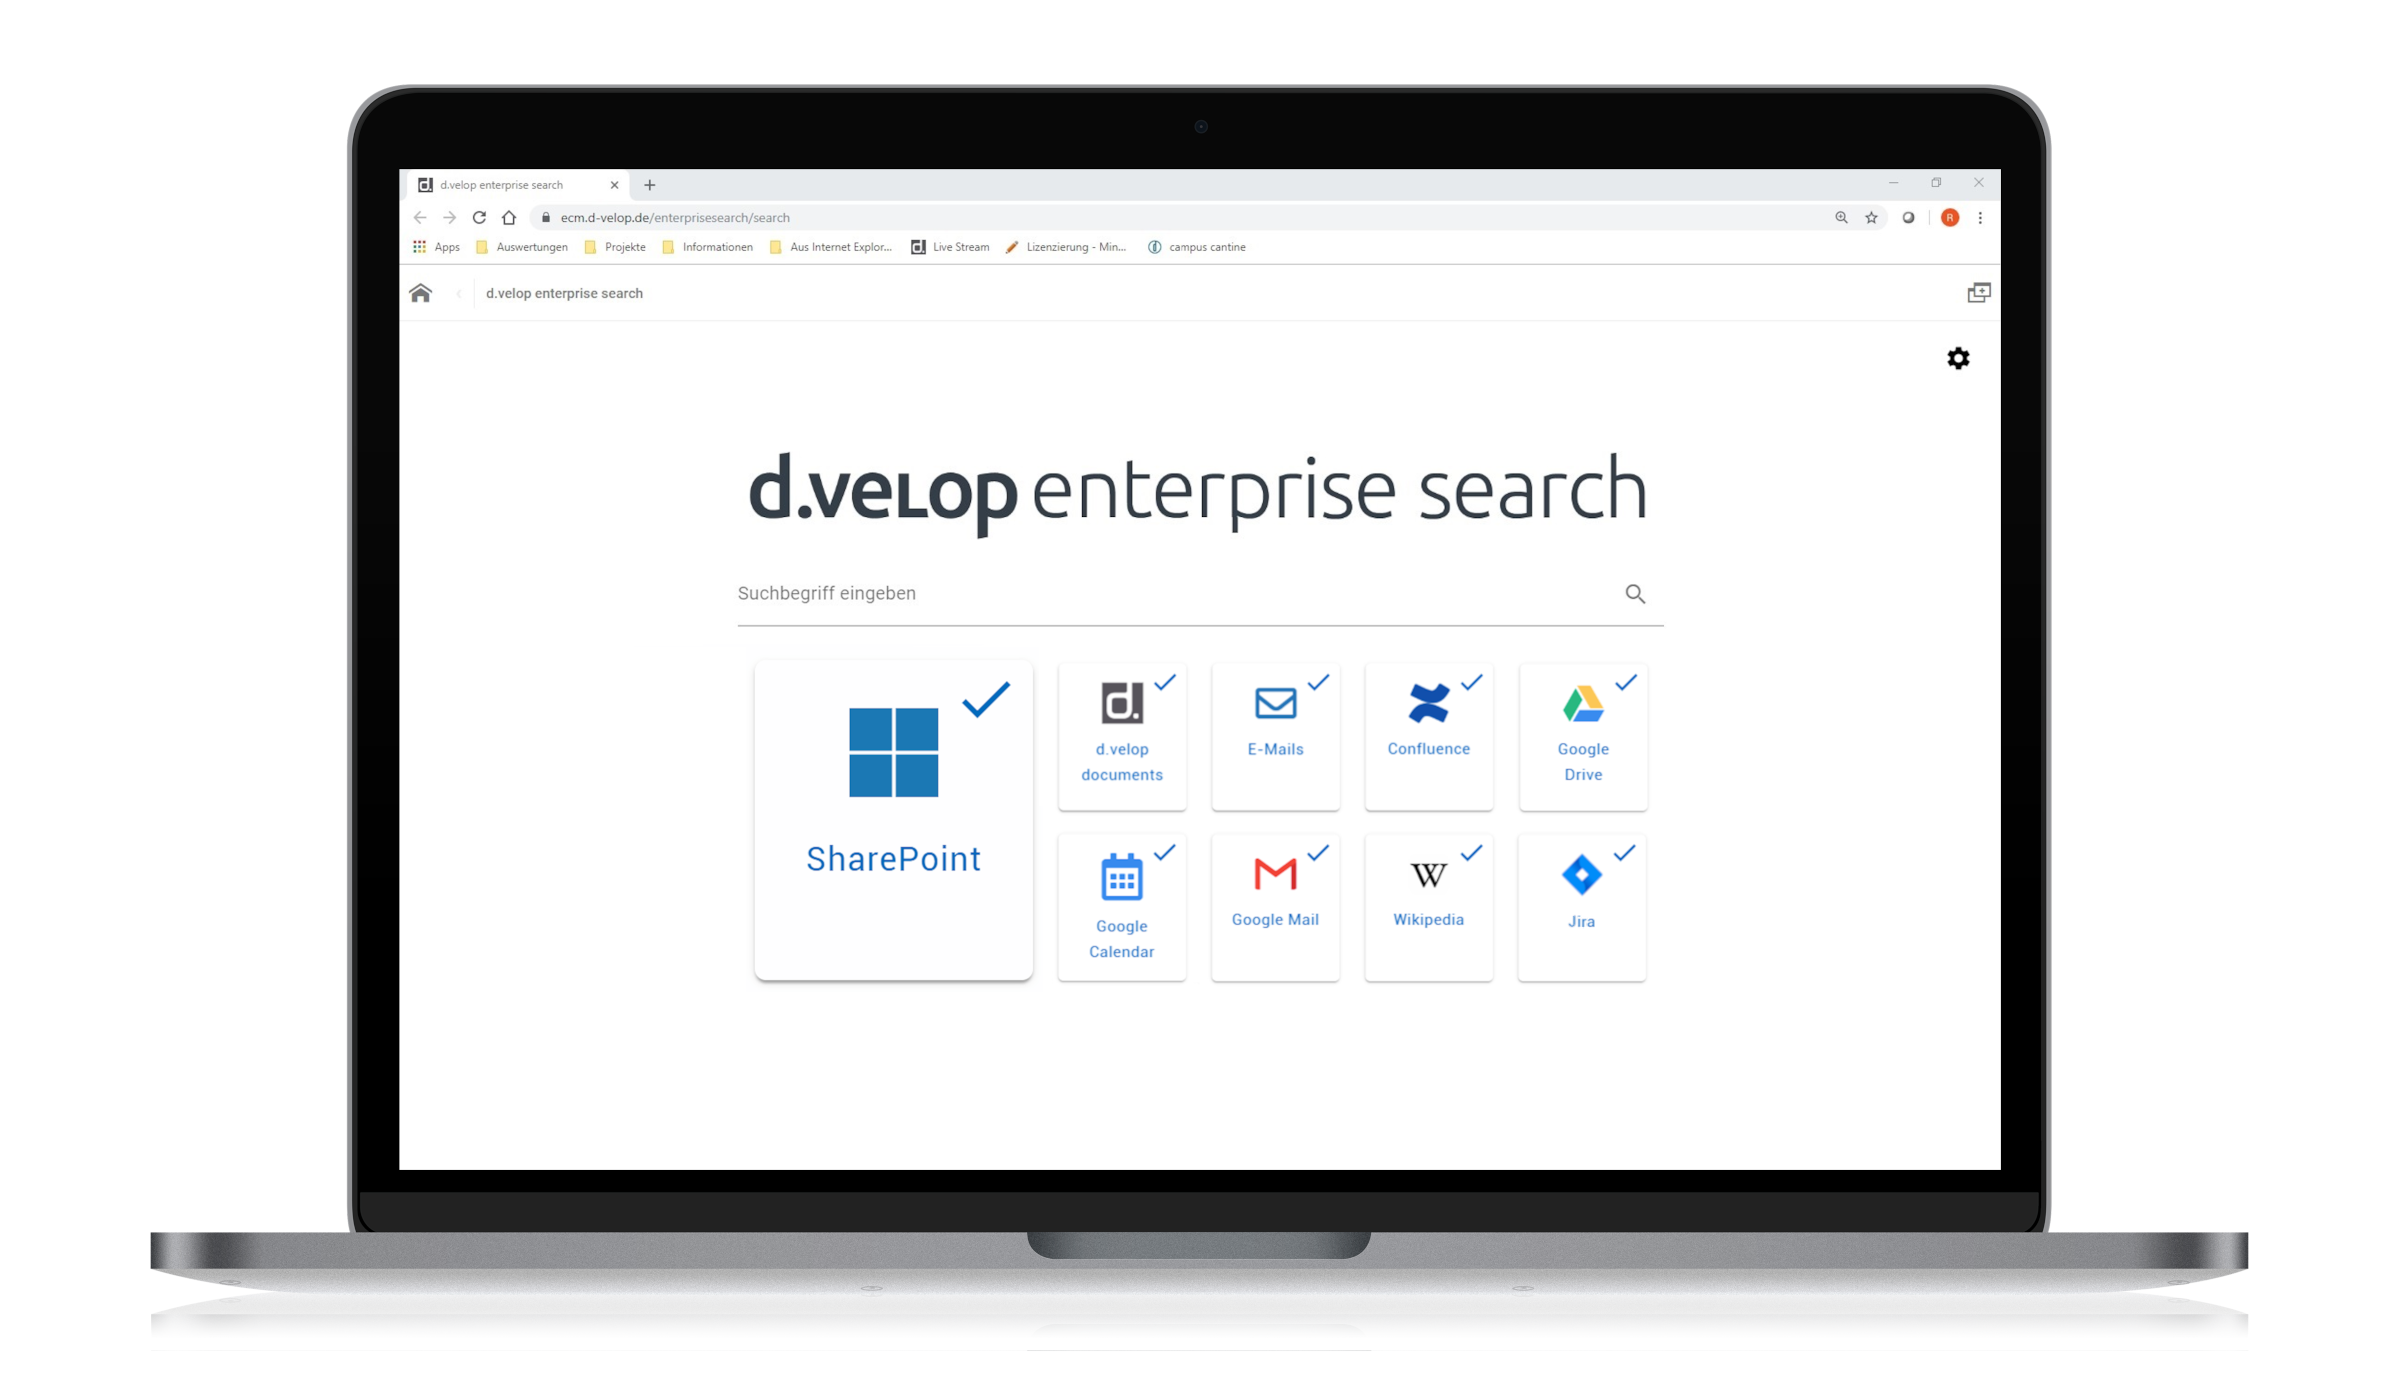 d.velop enterprise search for SharePoint Online